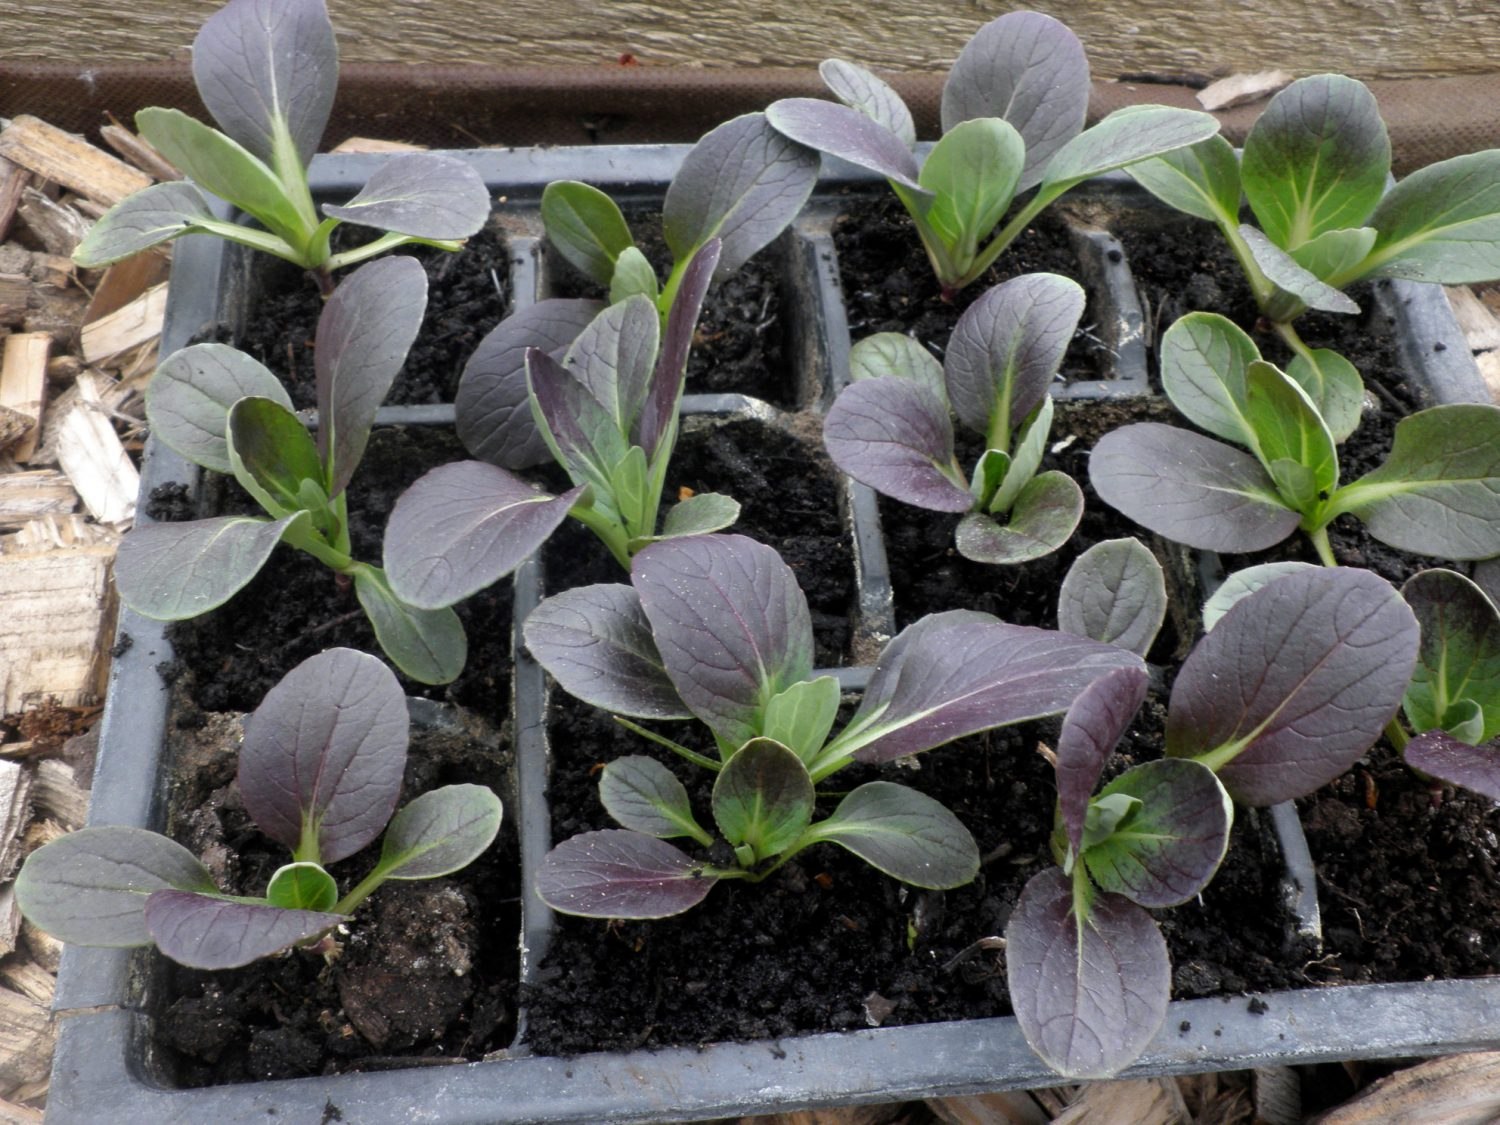 If you are short of time, but still want to grow something, then salad leaves are wonderfully quick and simple to grow from scratch